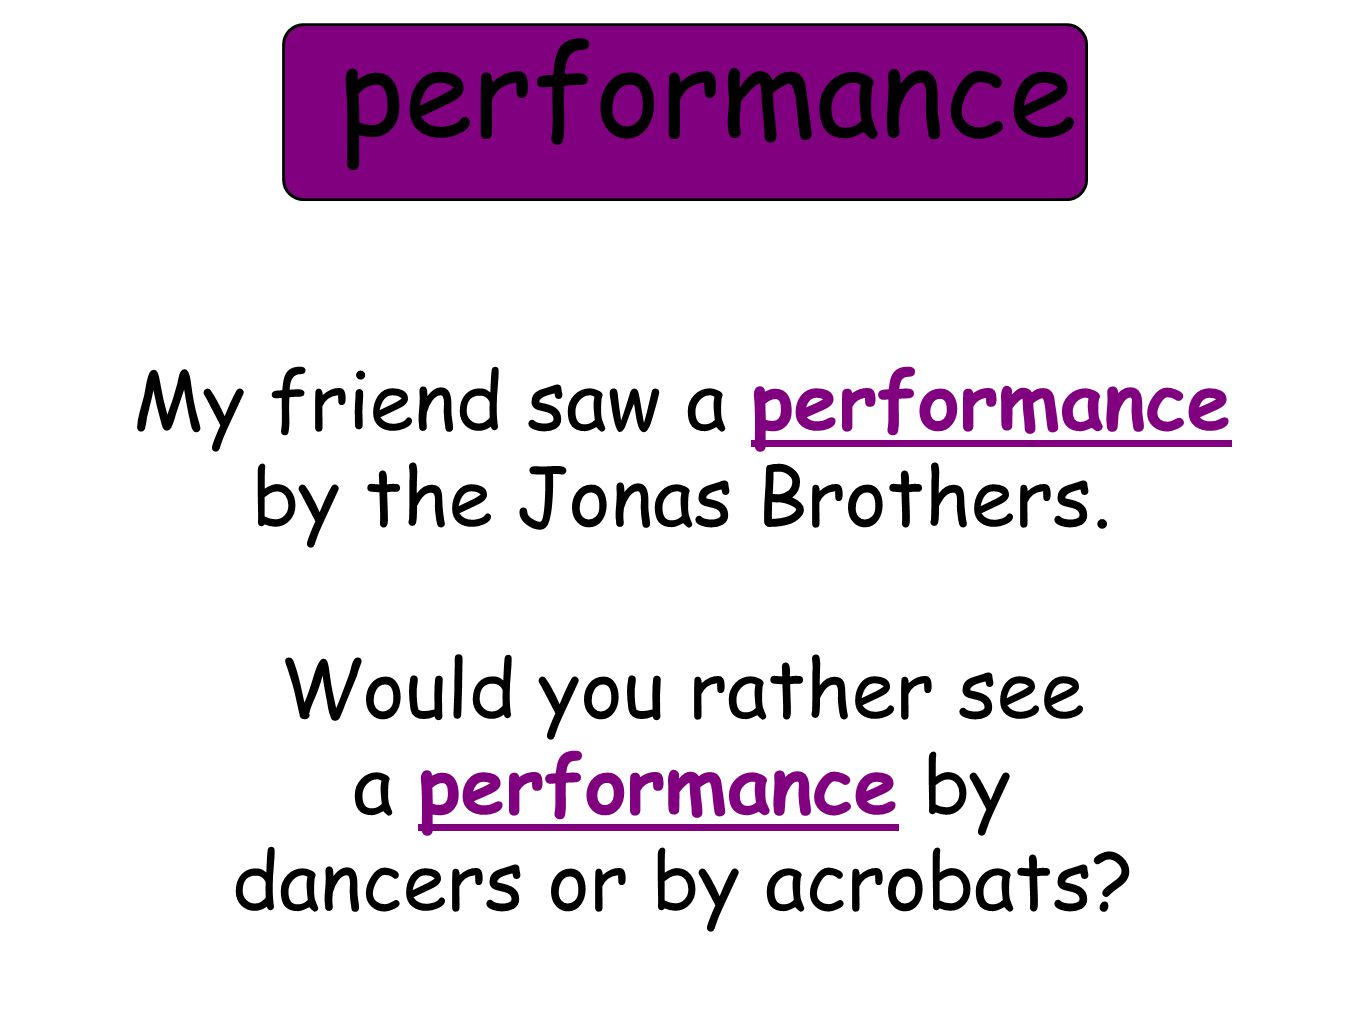 My friend saw a performance by the Jonas Brothers.